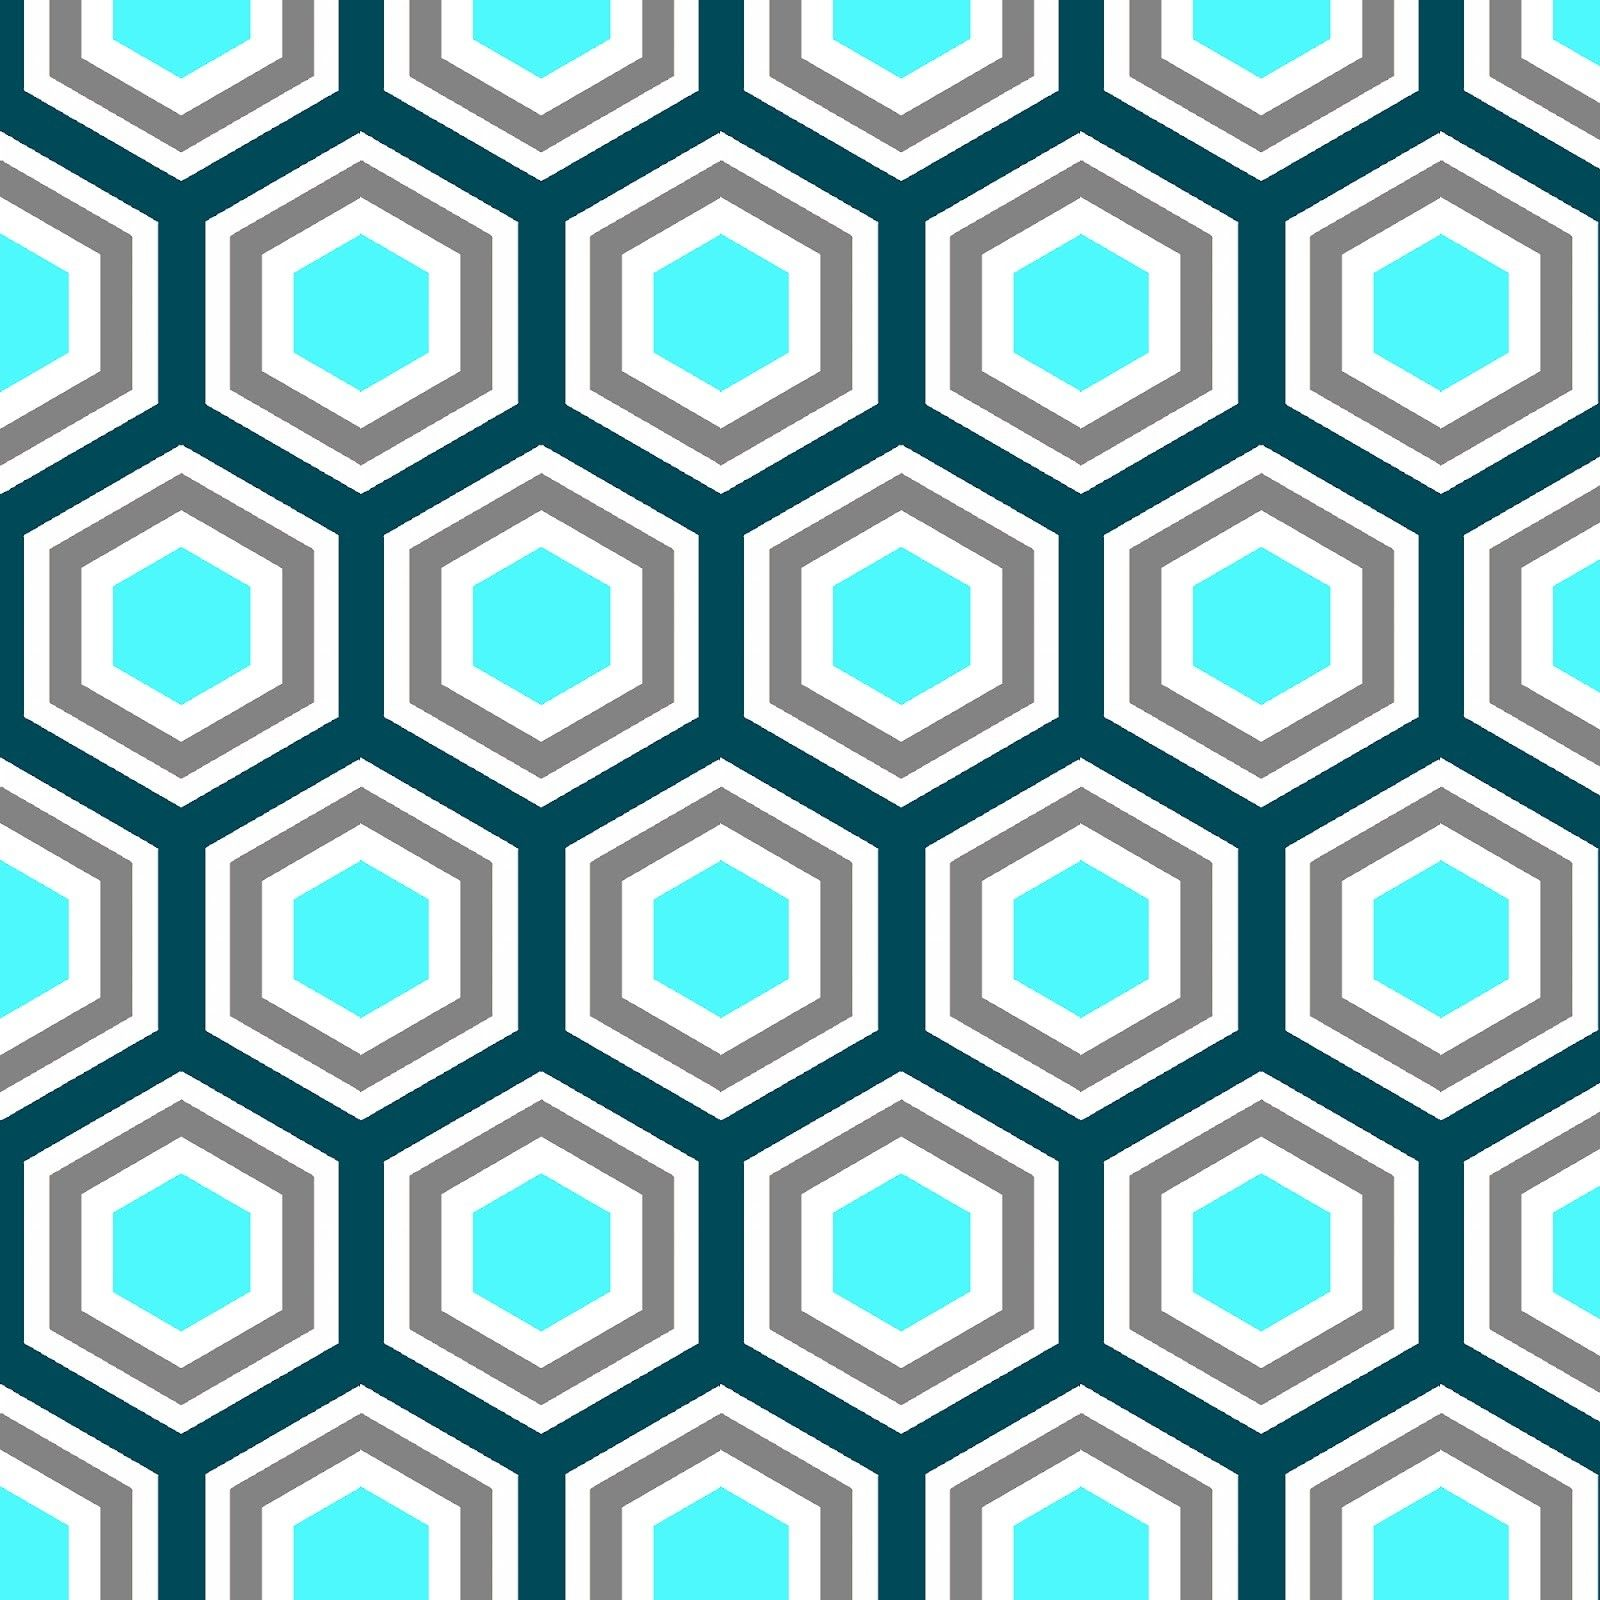 Cool Pattern Patterns Pinterest Patterns And Design